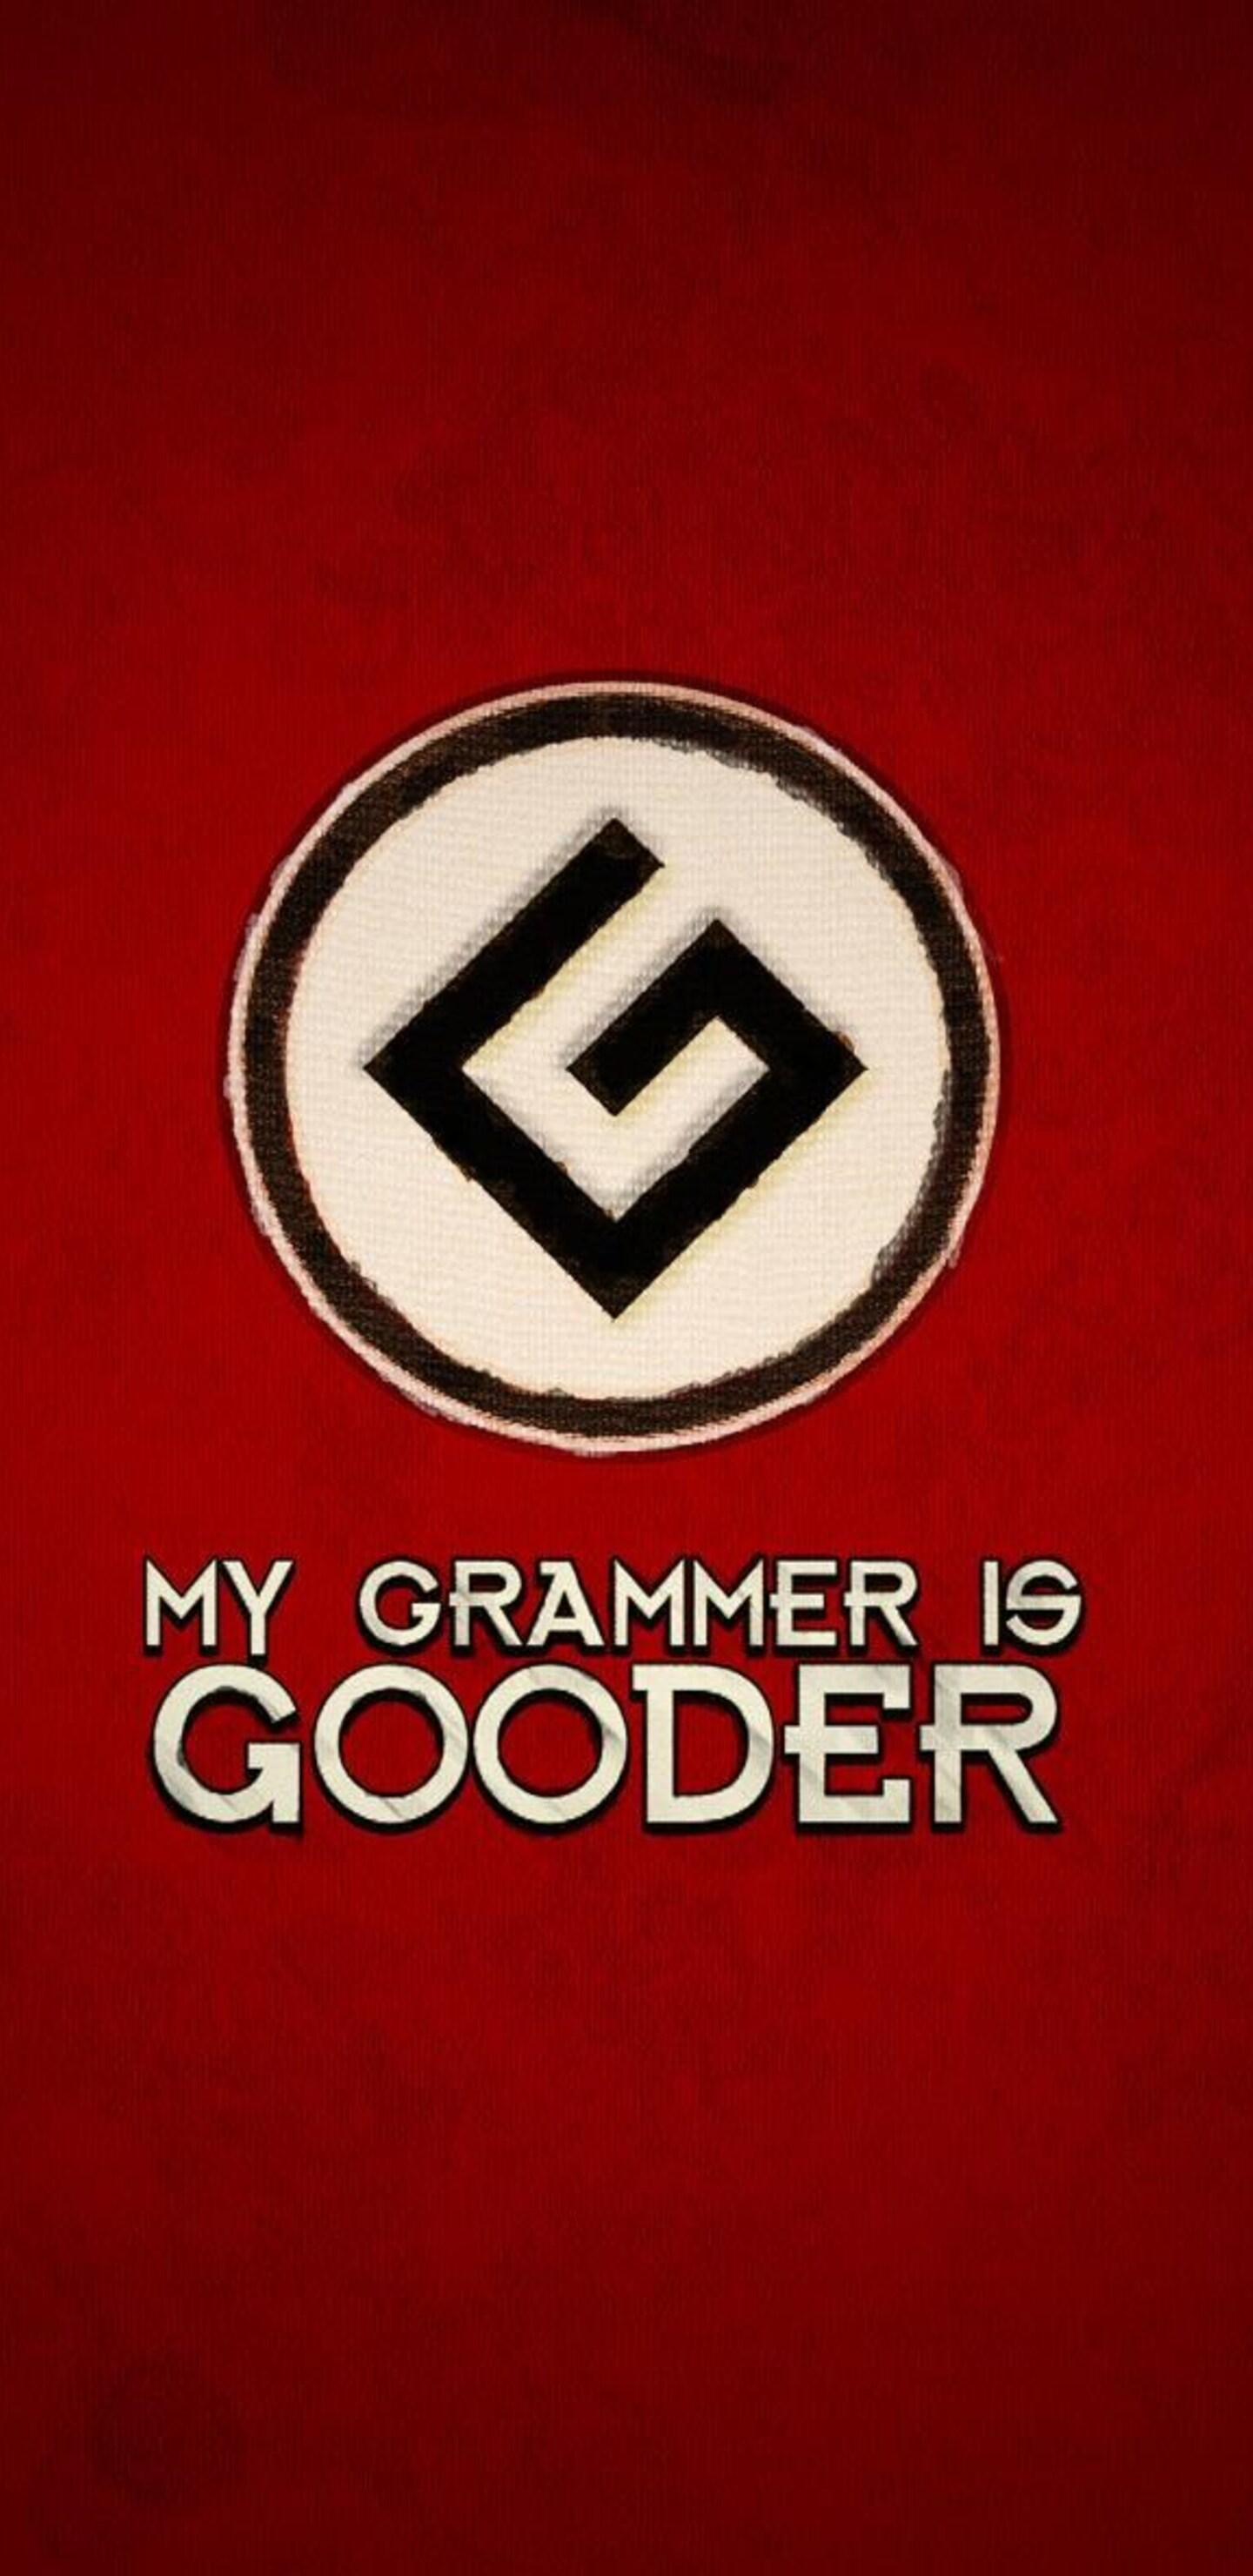 my-grammer-is-gooder.jpg